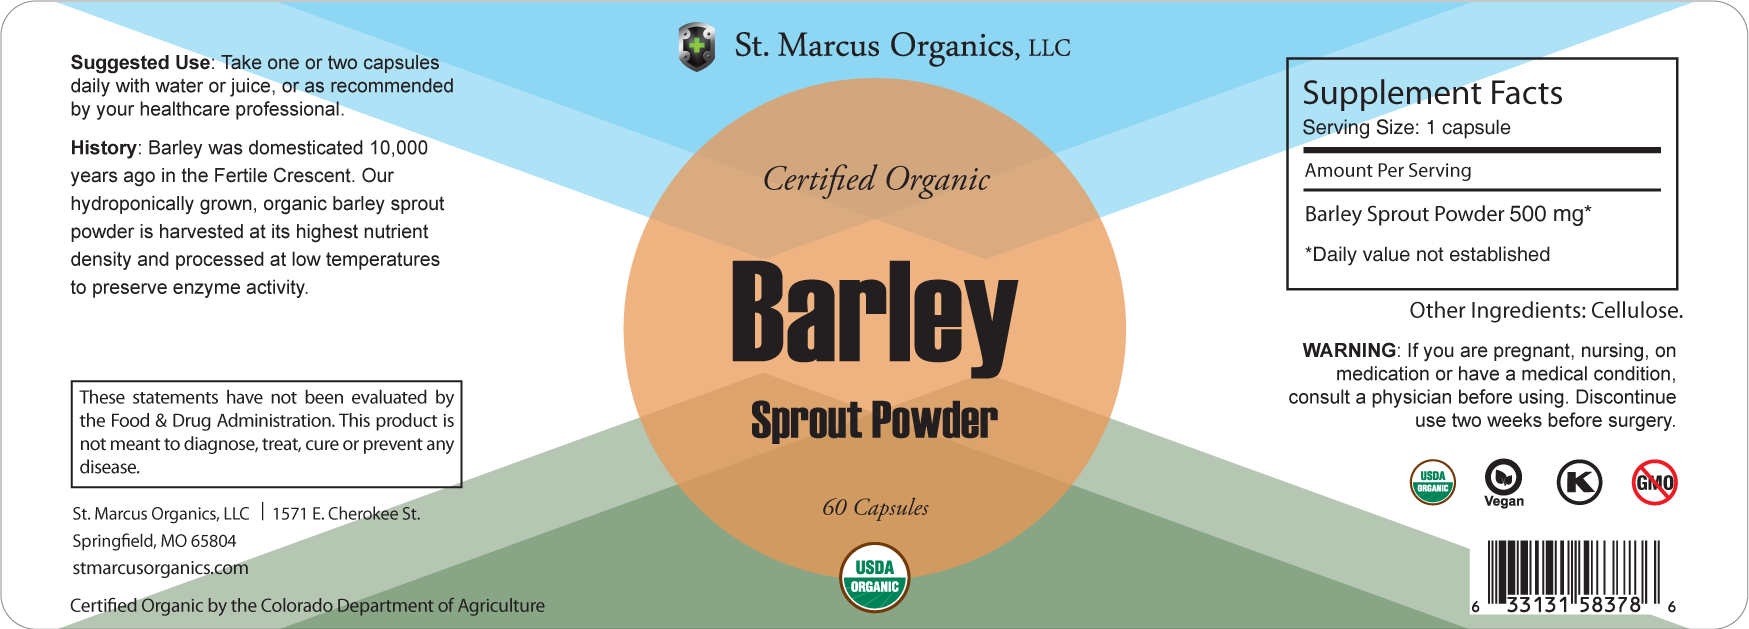 Barley-Sprout-Powder-Capsules-St-Marcus-Organics